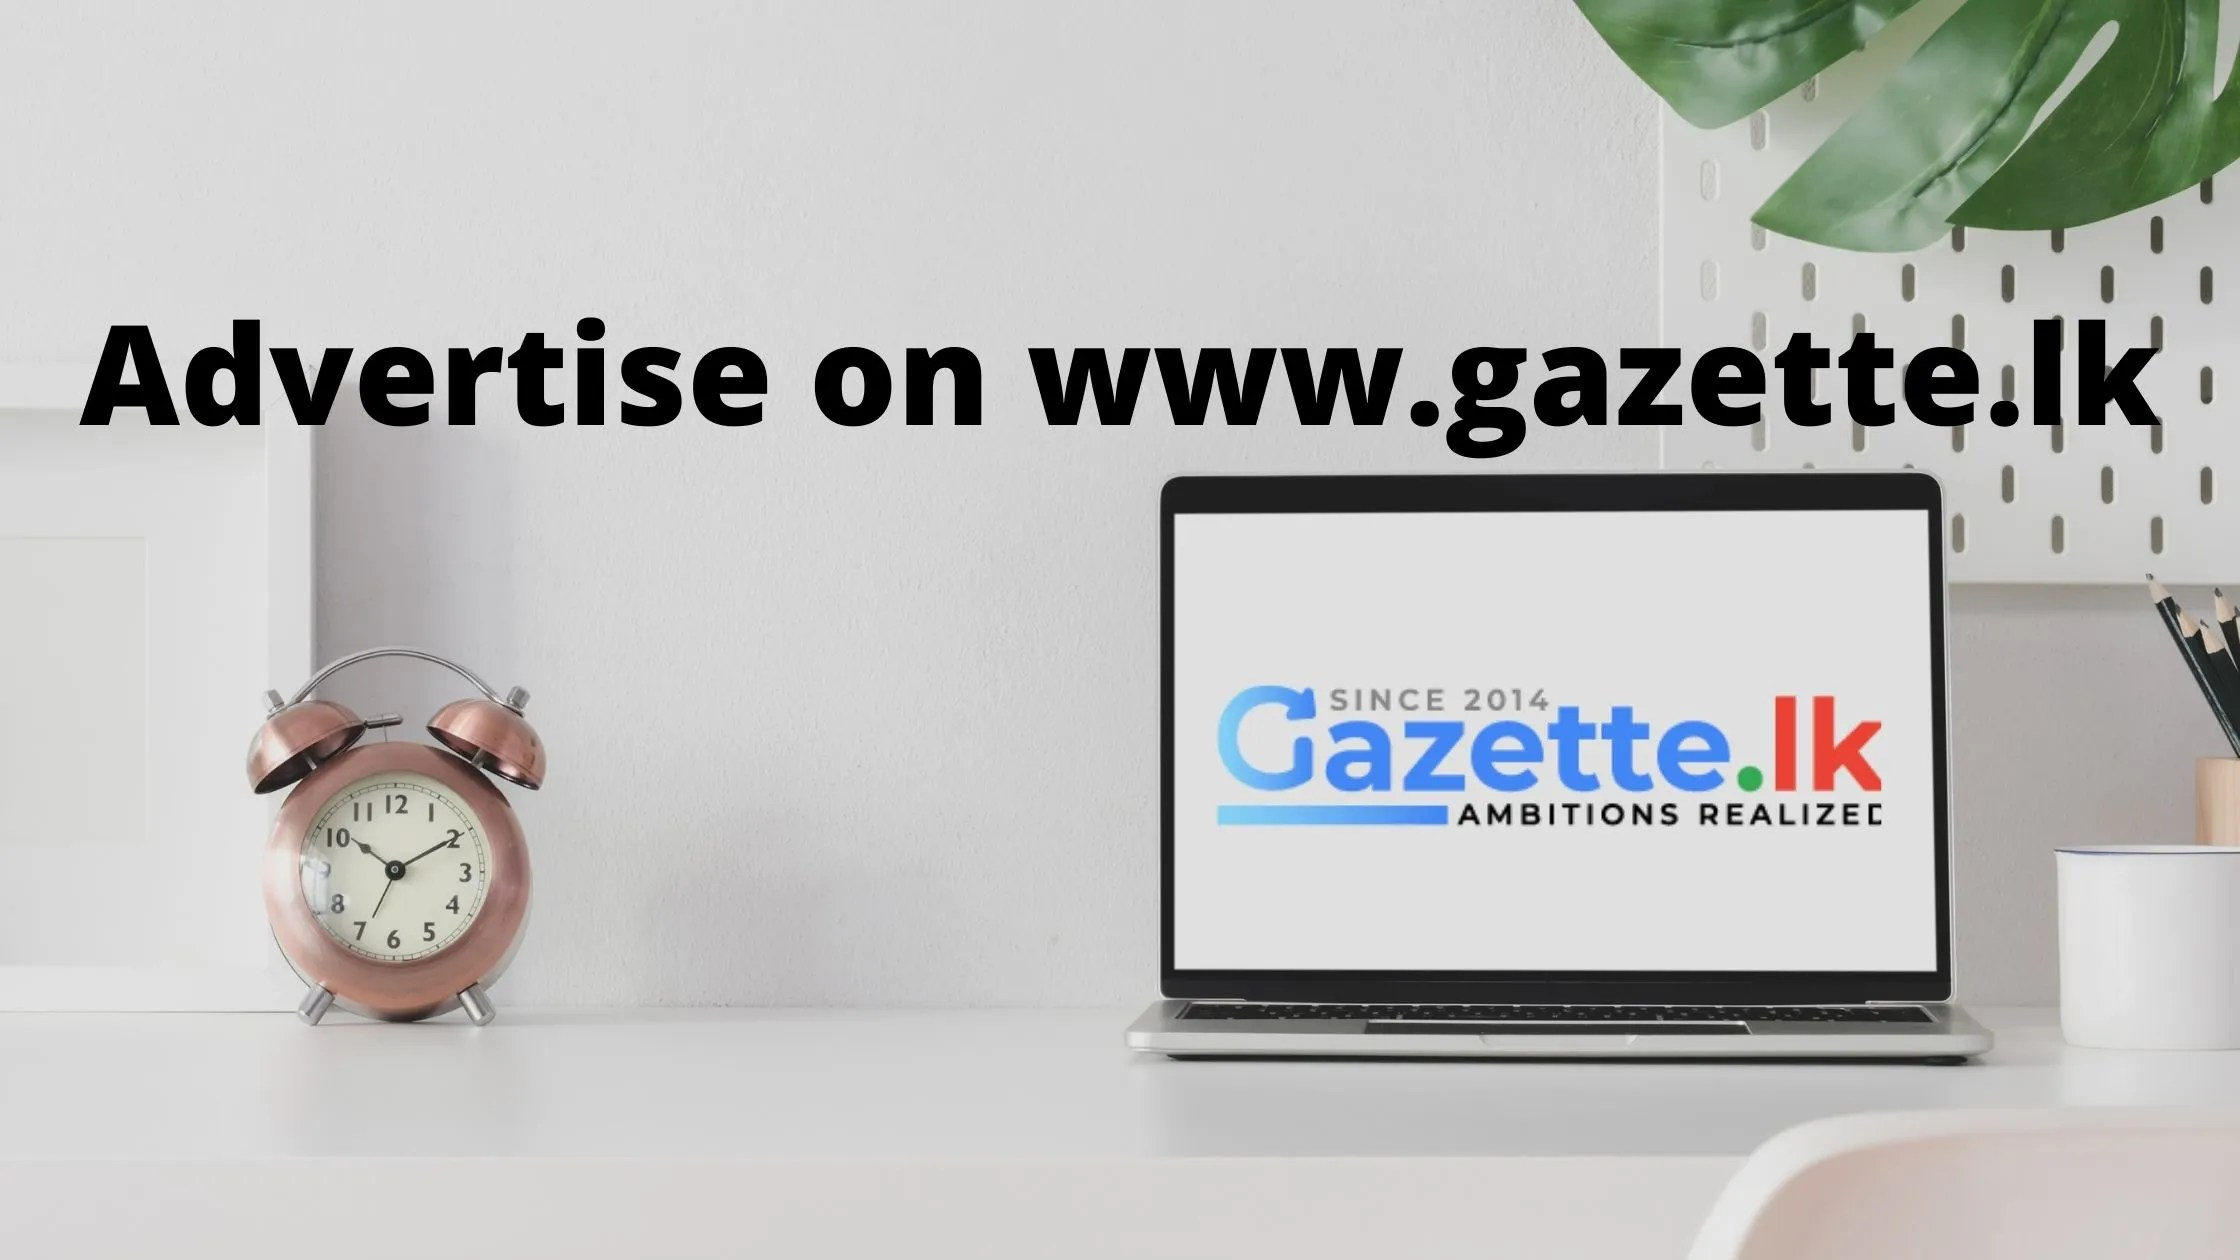 advertise on gazette.lk